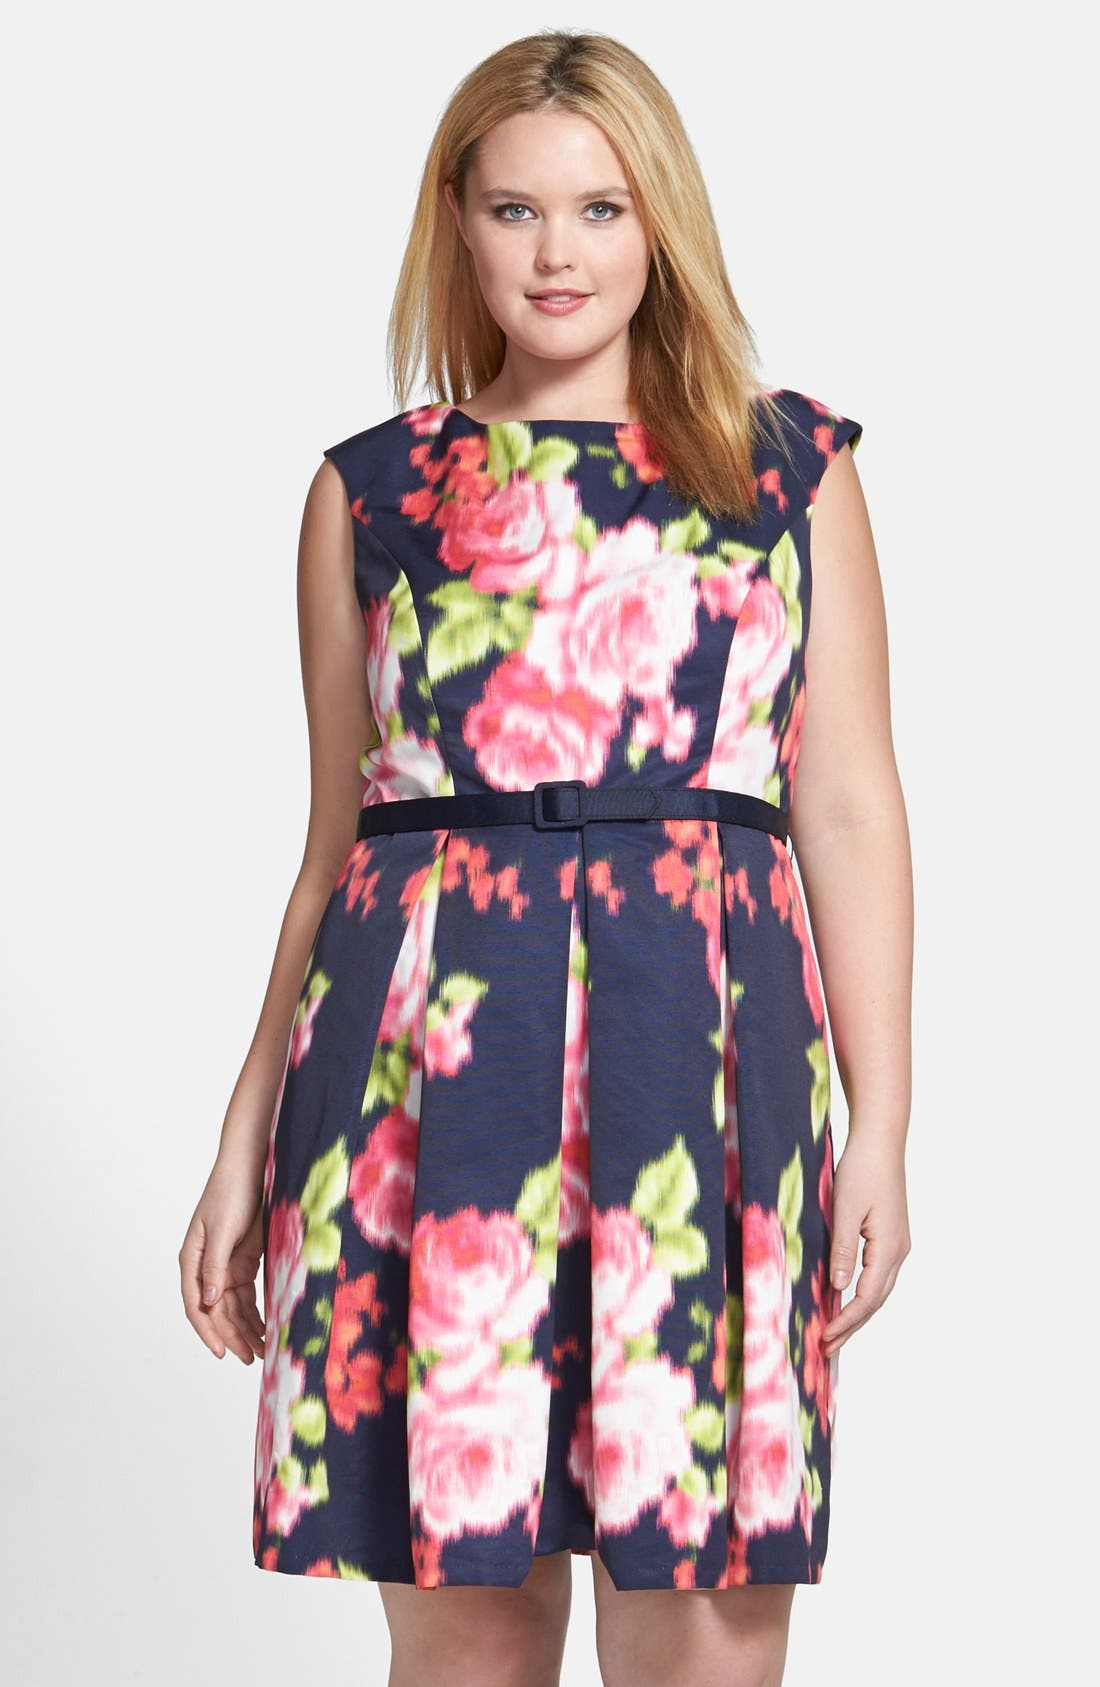 Alternate Image 1 Selected - Eliza J Floral Print Cap Sleeve Fit & Flare Dress (Plus Size)